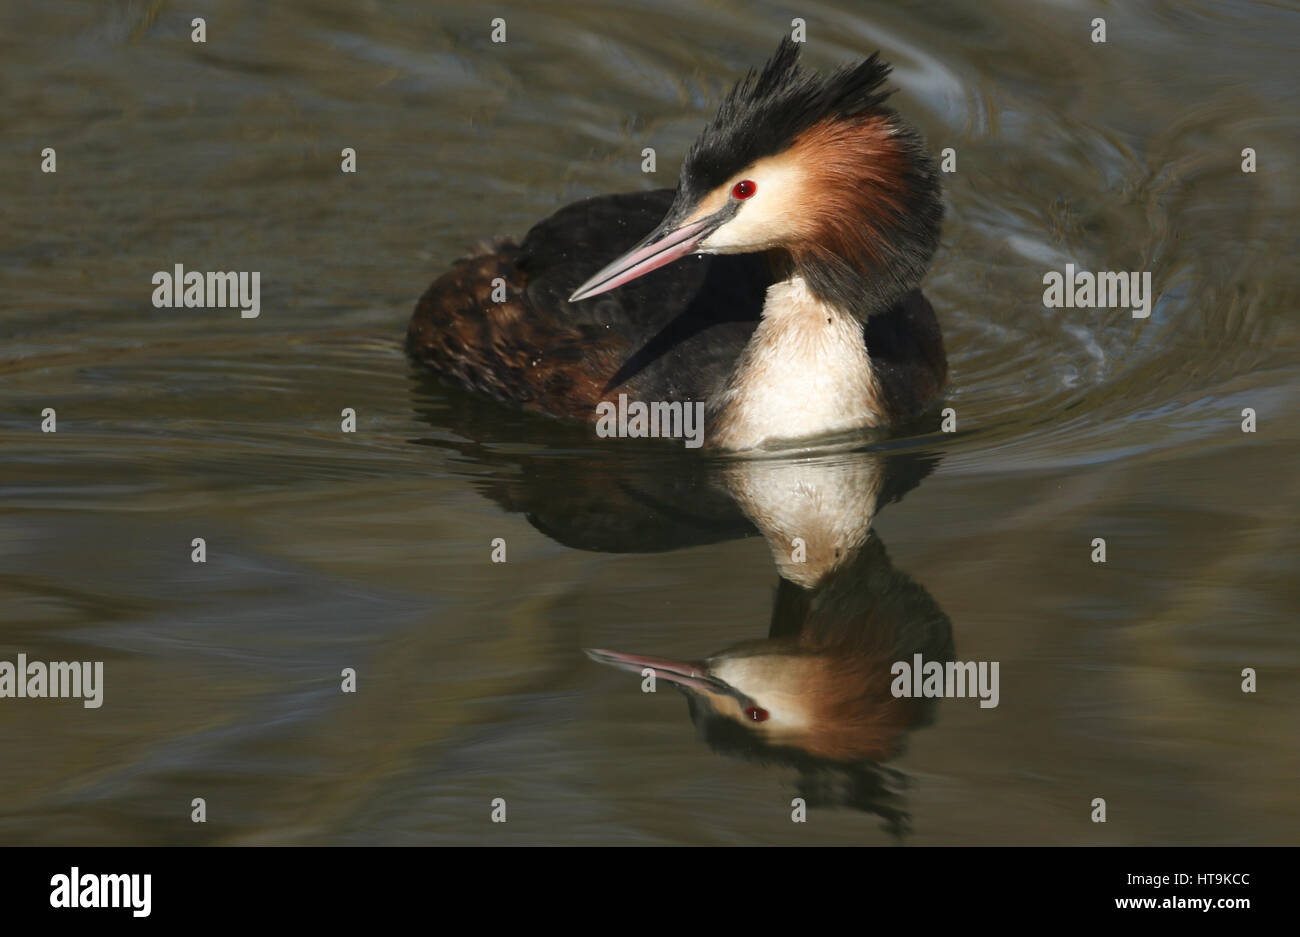 A beautiful Great crested Grebe (Podiceps cristatus) swimming in a stream with its reflection showing in the water. - Stock Image